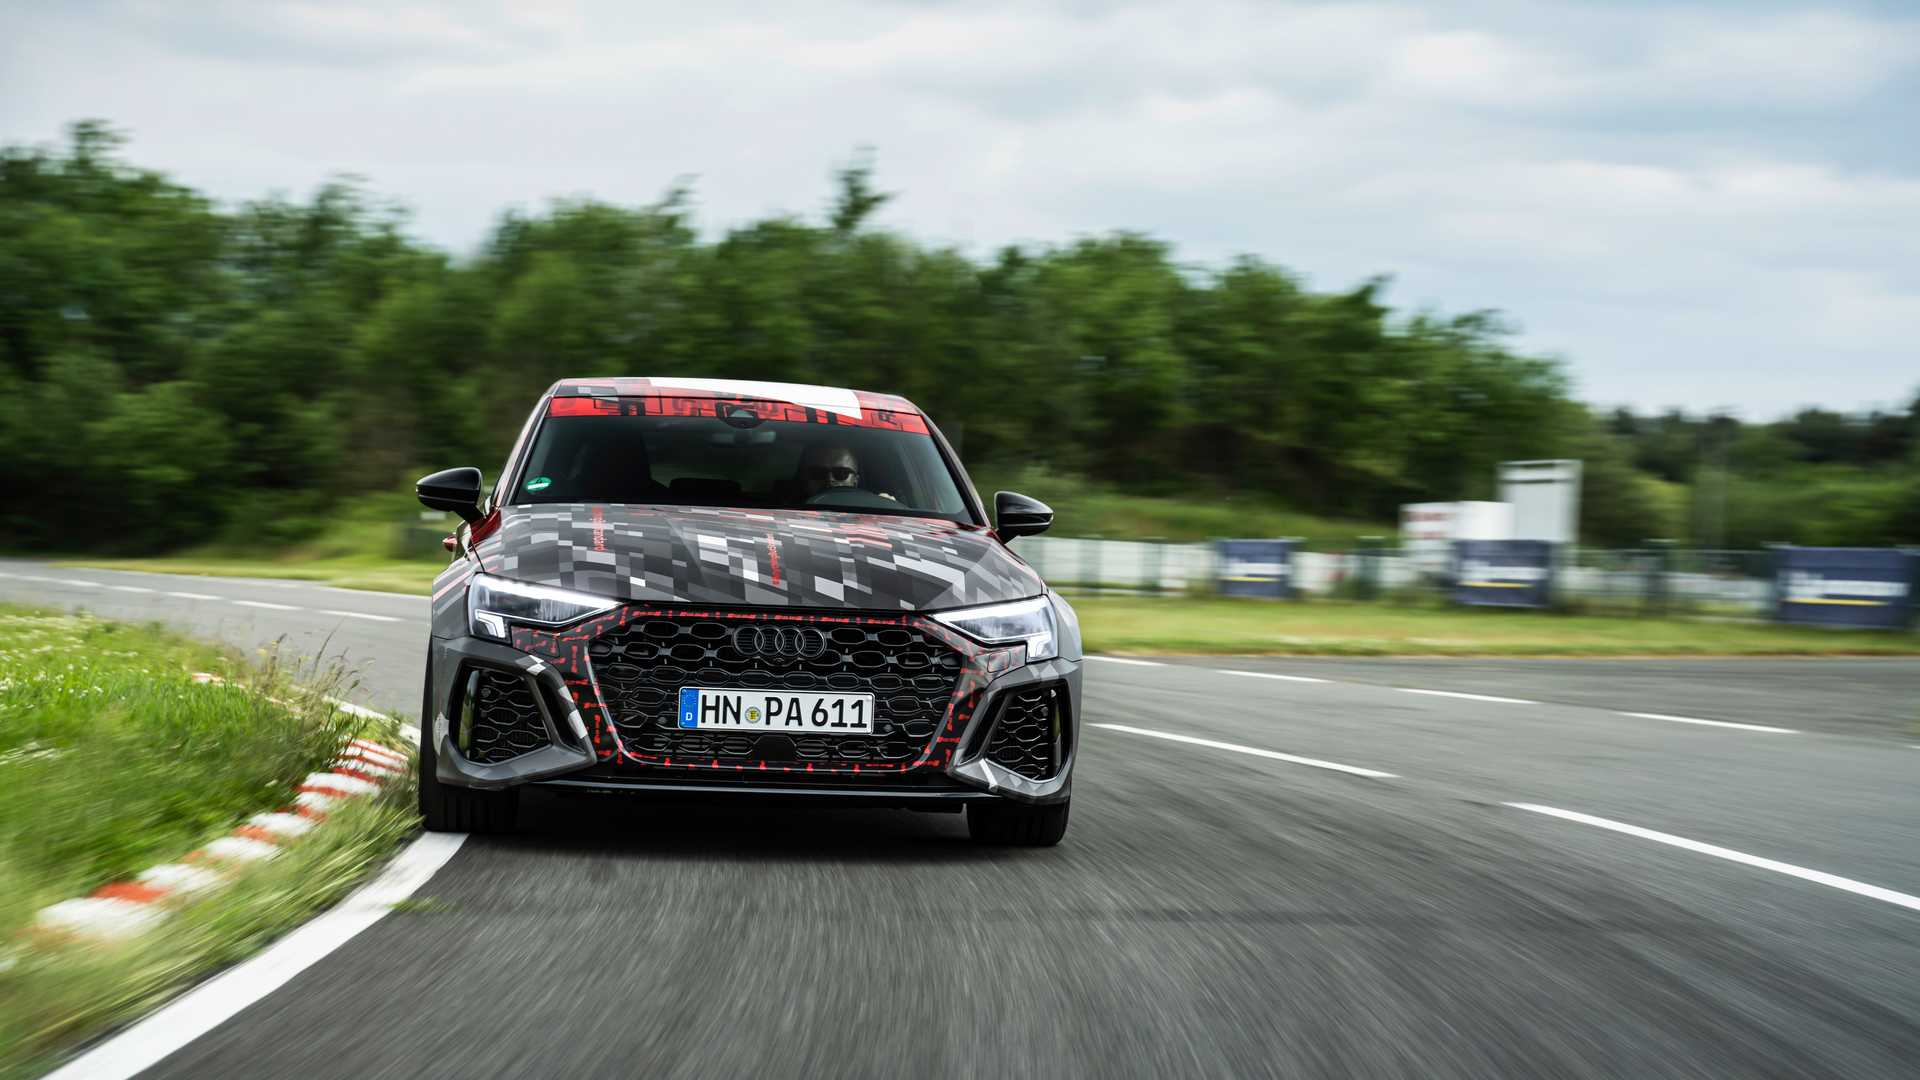 2022-audi-rs3-sportback-front-view-4